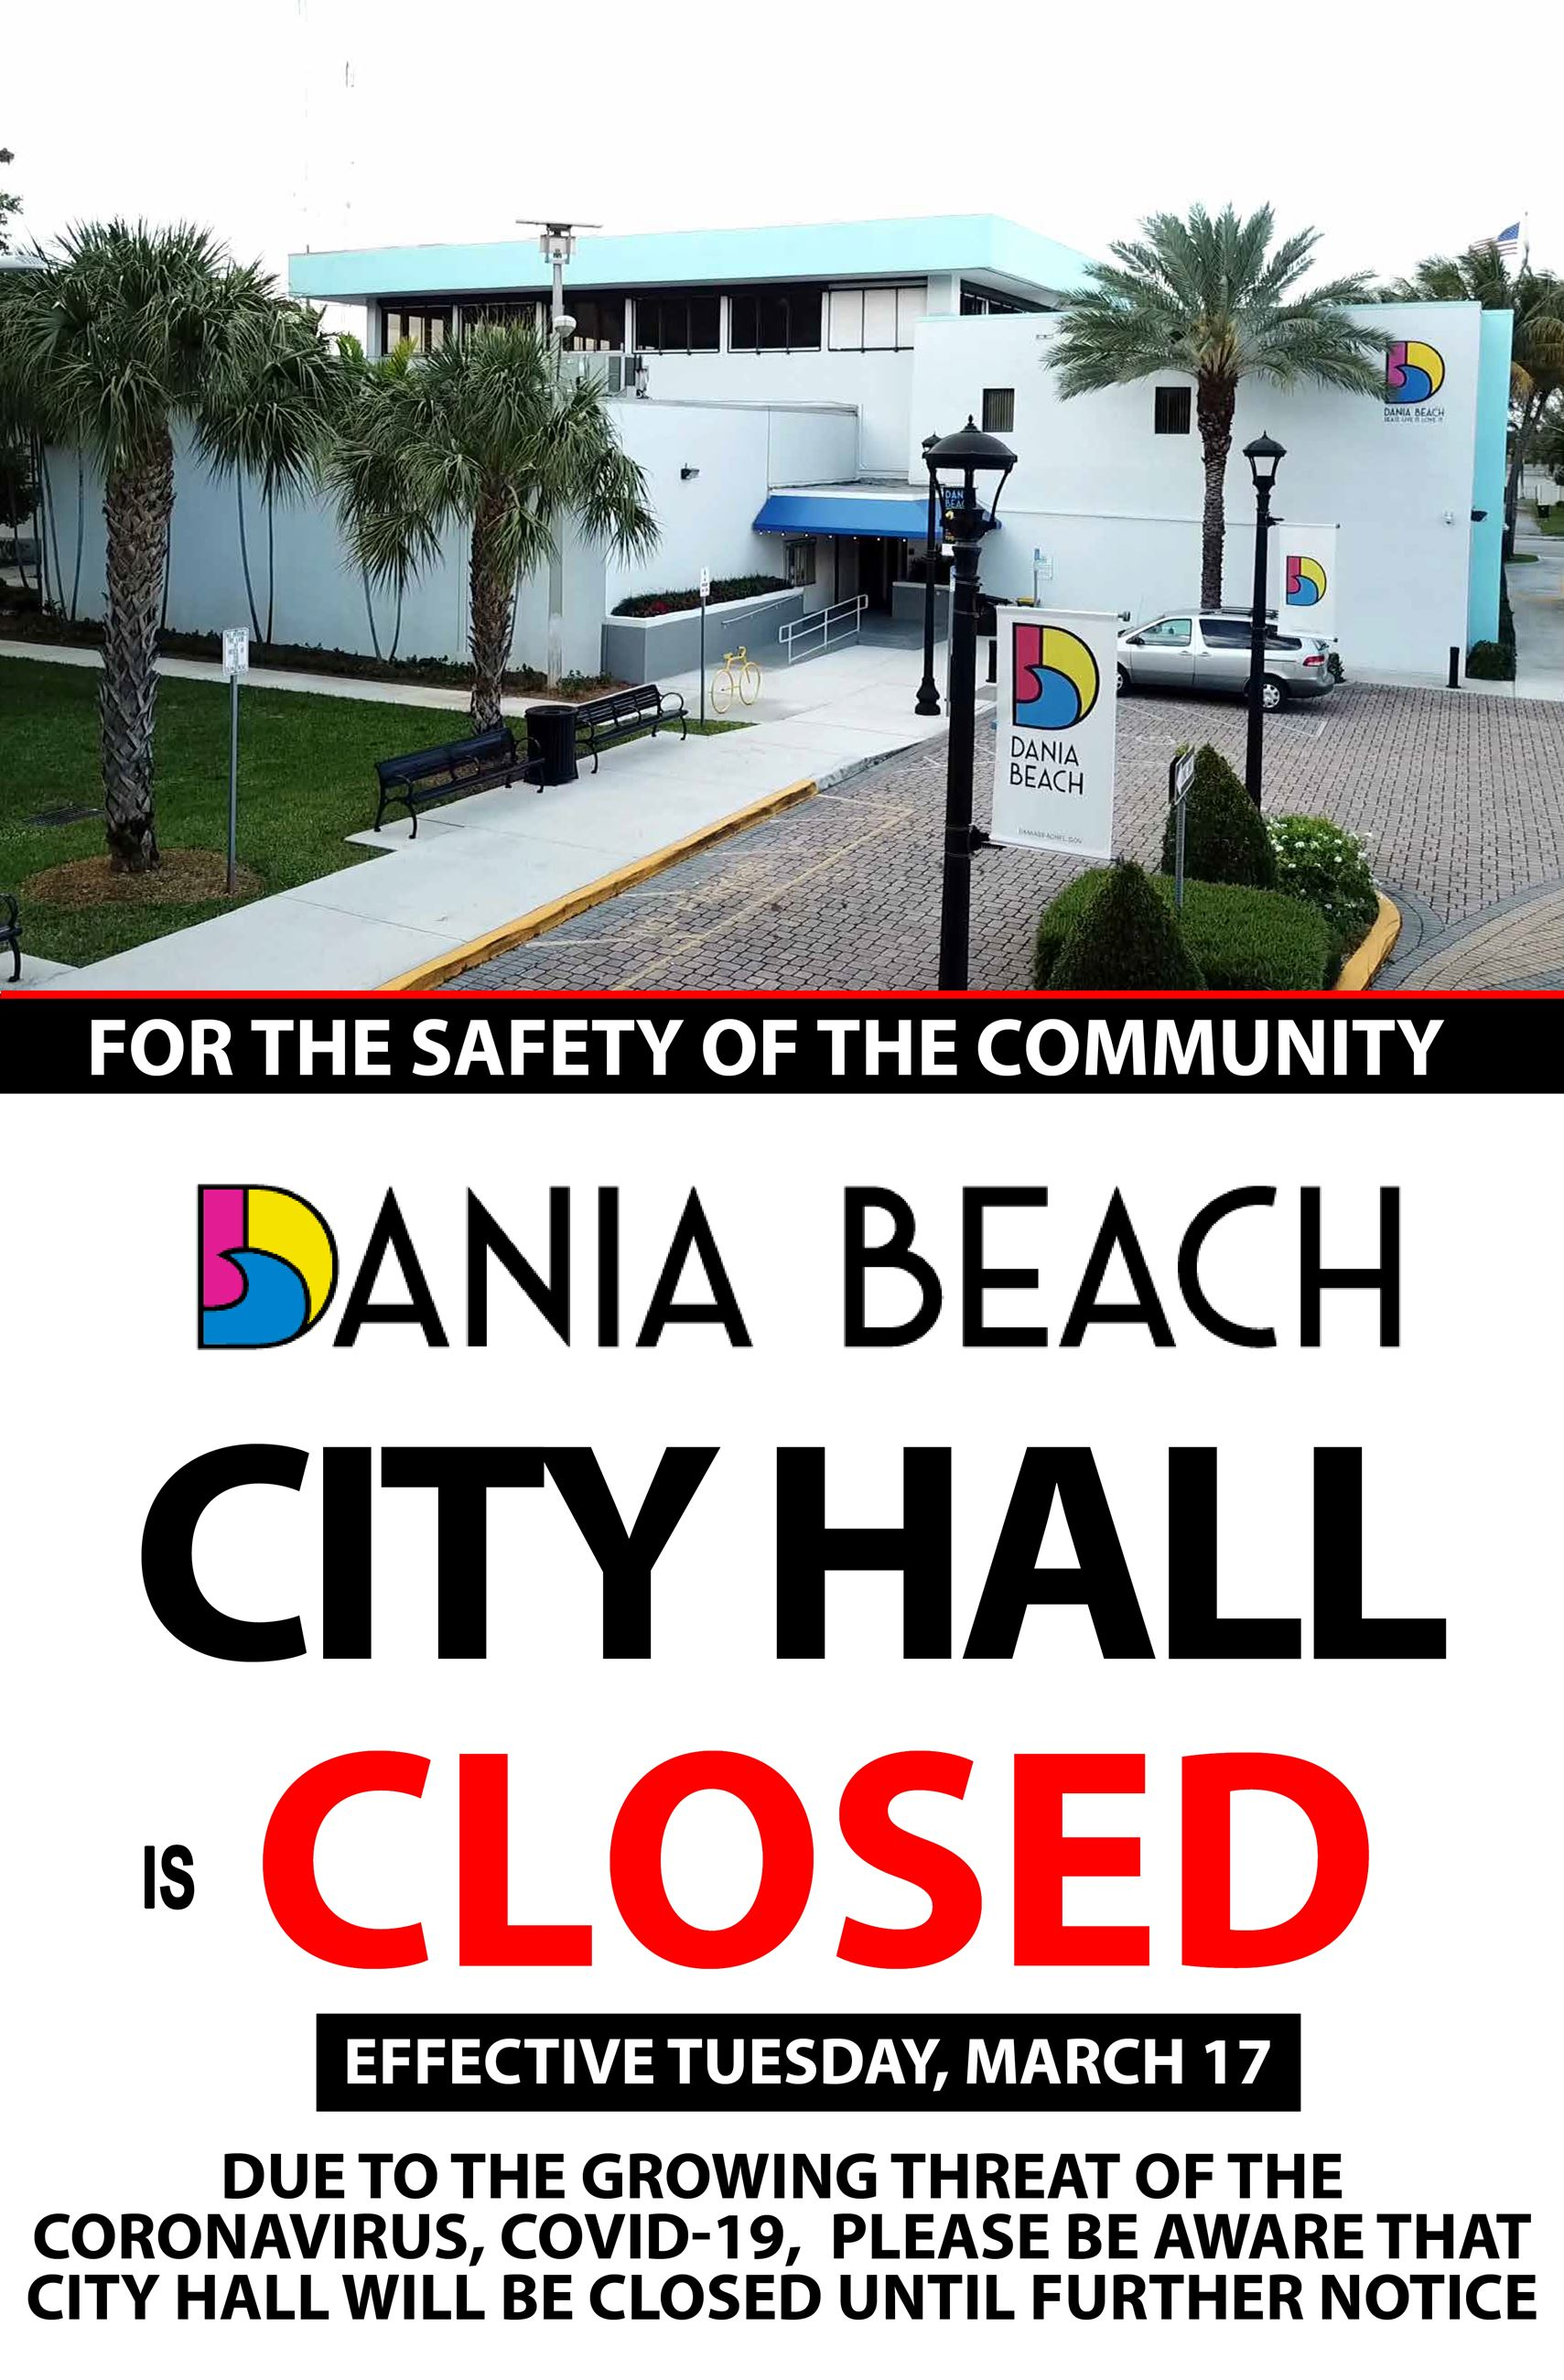 CITY HALL is CLOSED until further notice in order to help prevent the spread of COVID-19 Coronavirus